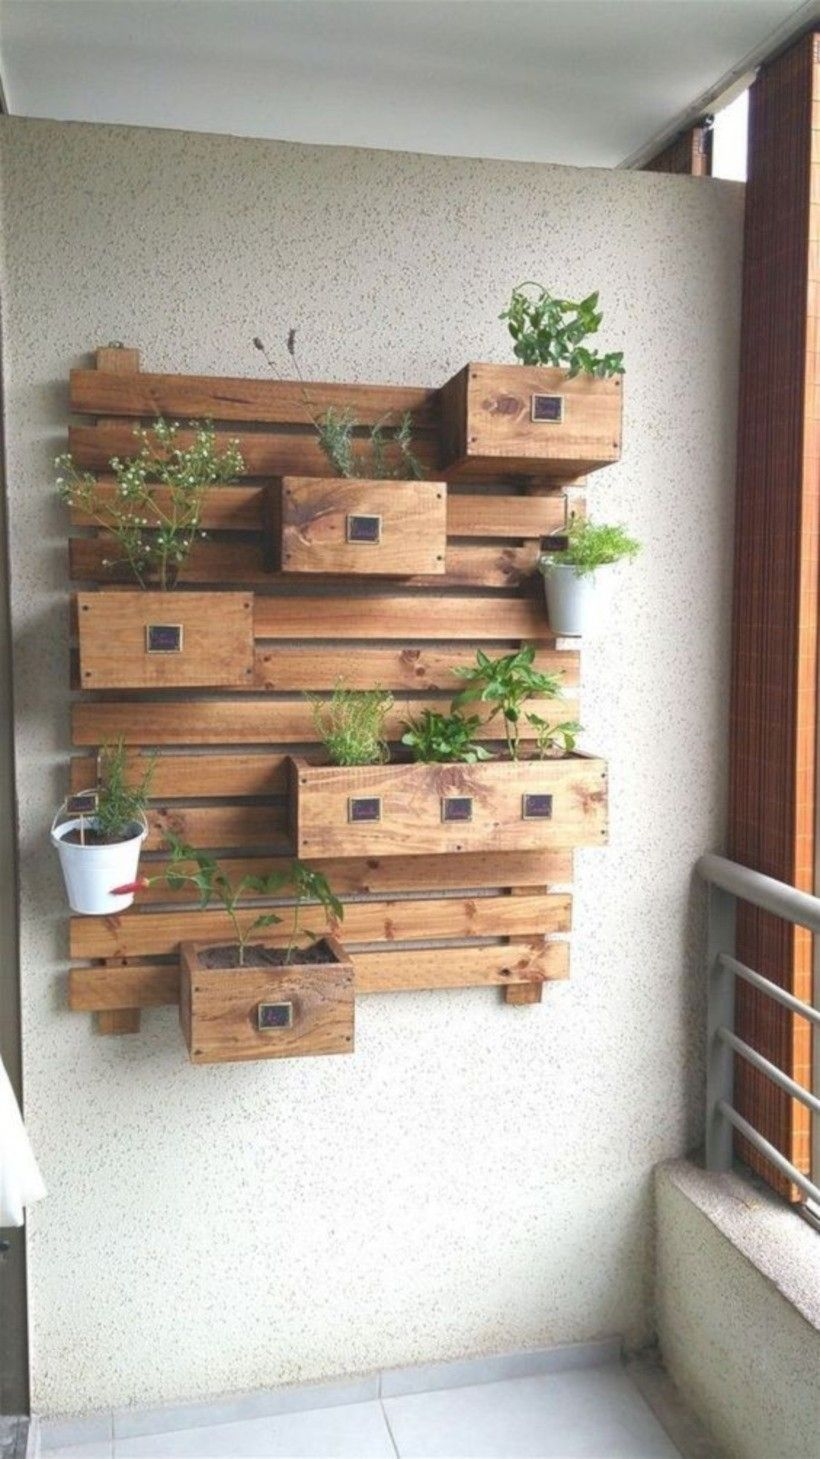 39 Easy and Cheap DIY Home Decor Ideas You Must Try #cheapdiyhomedecor